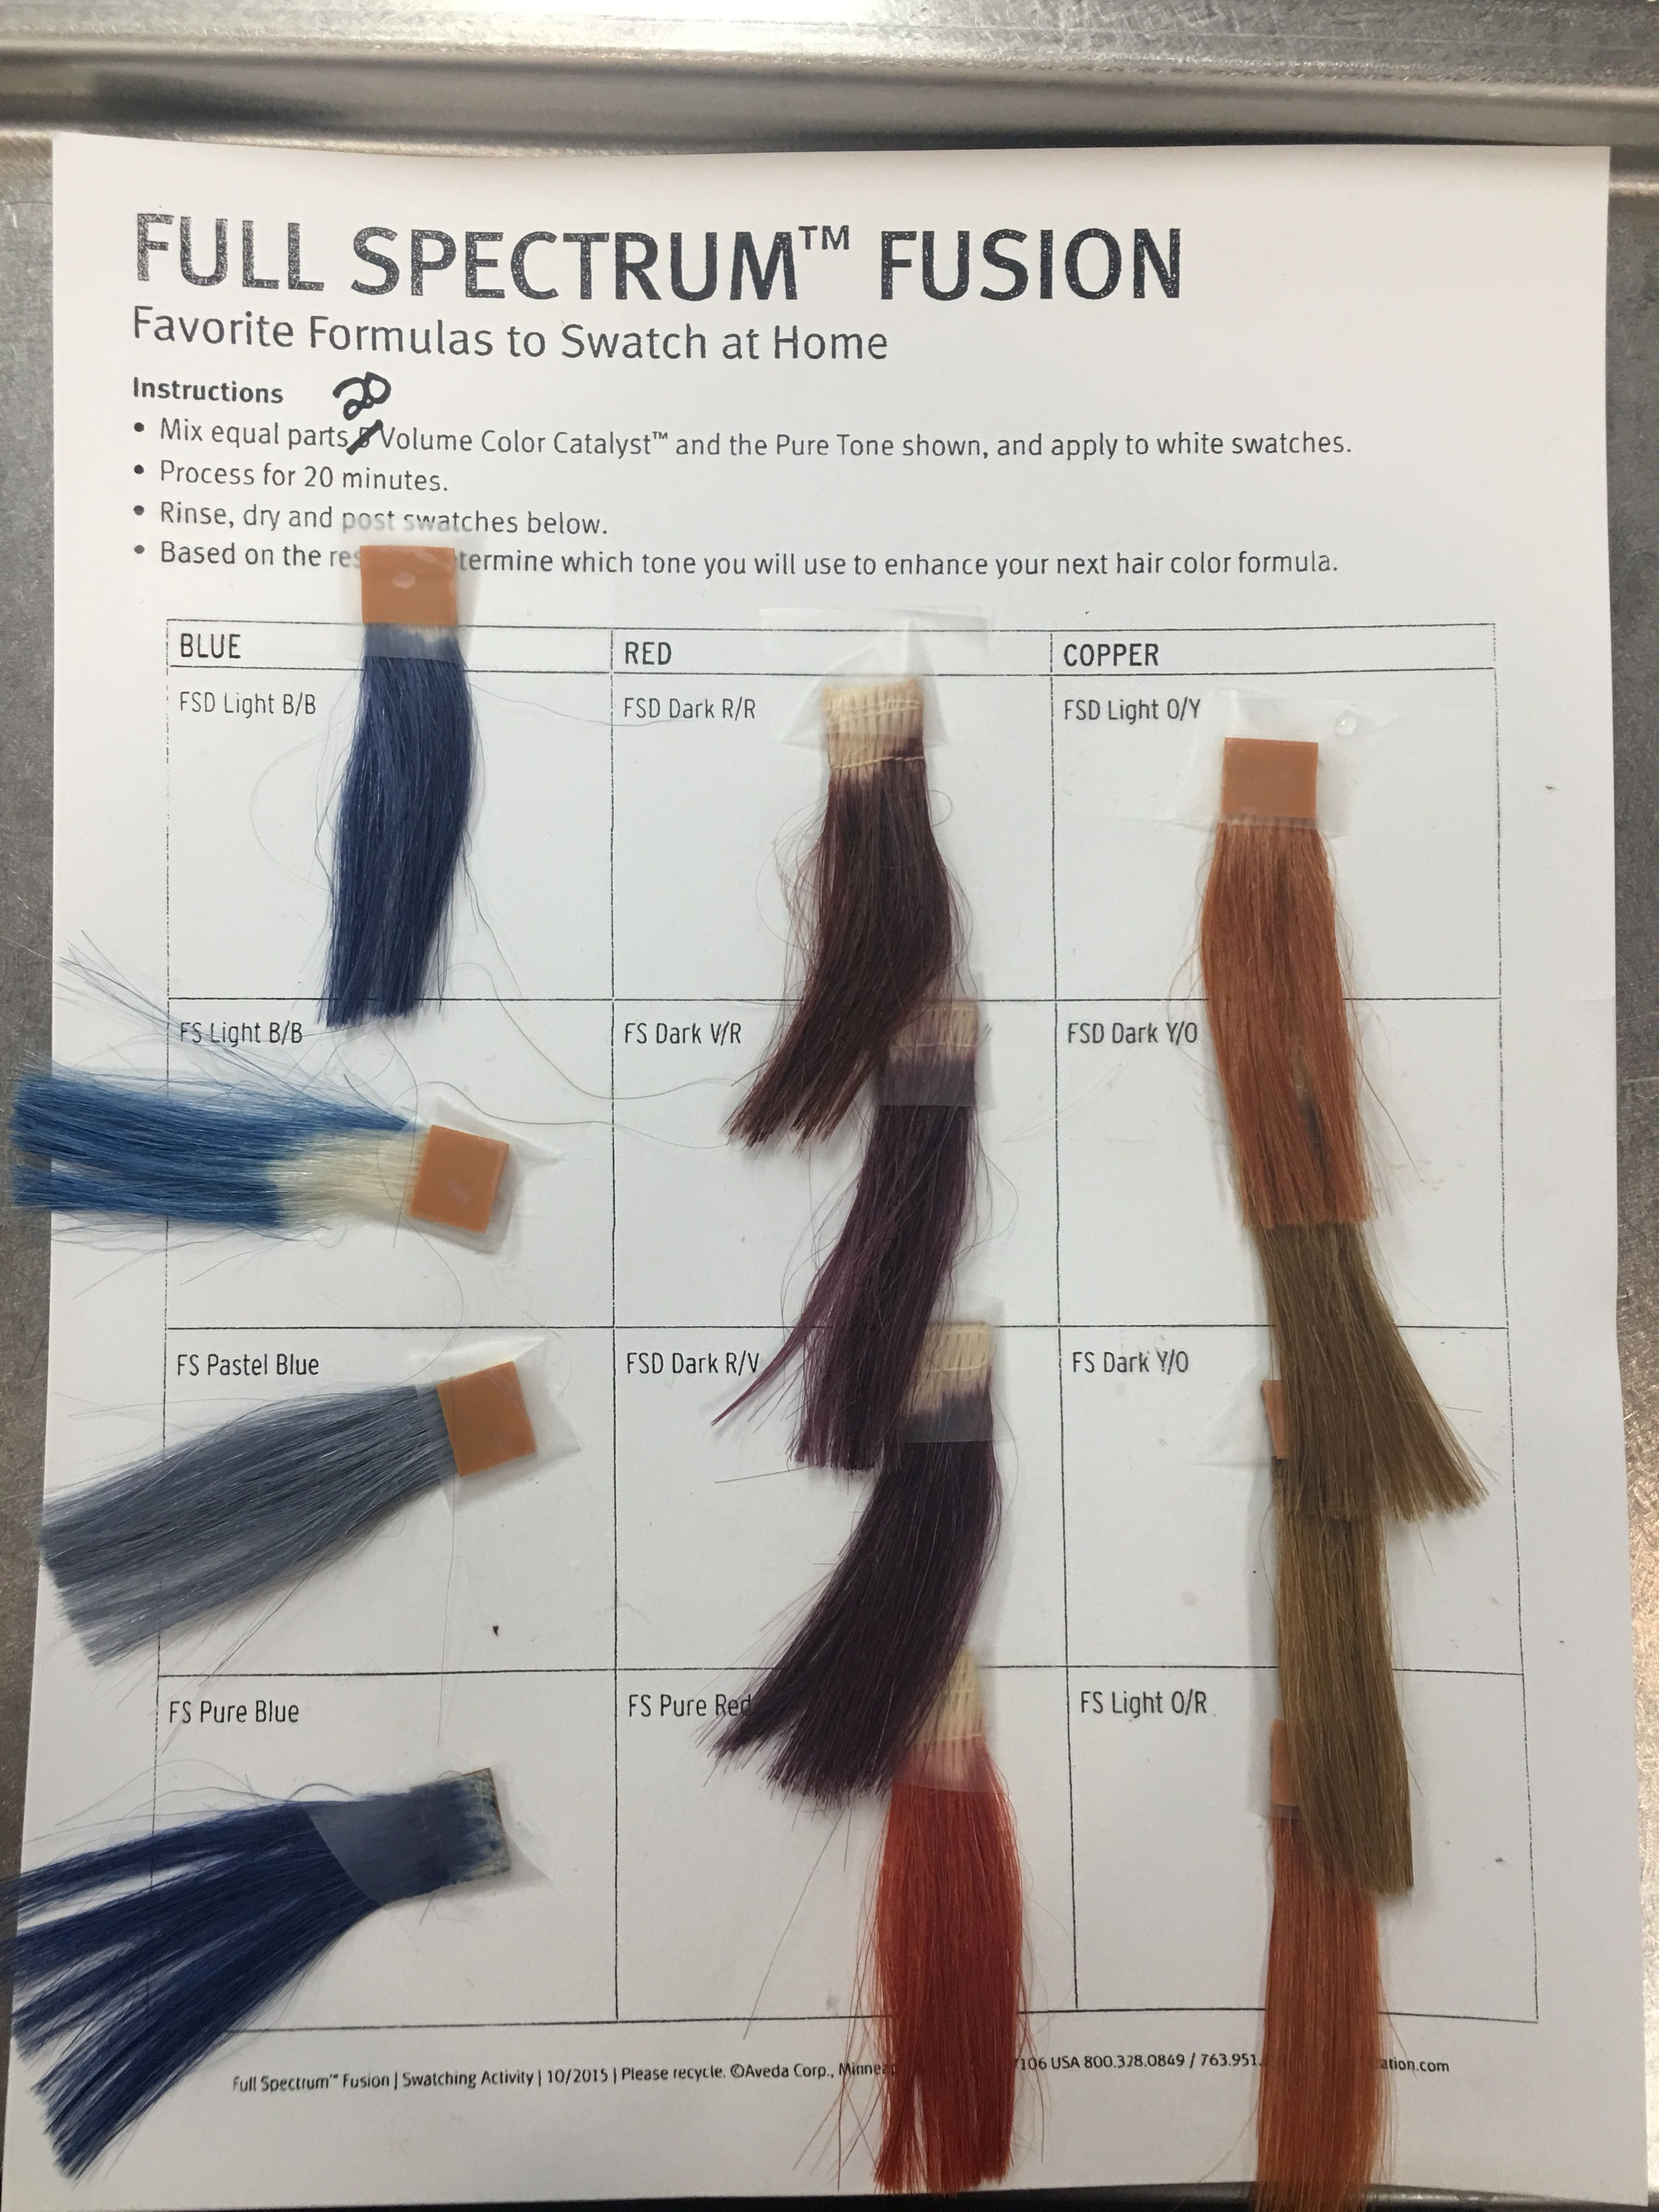 Pin By Olivia Sherp On Aveda Color Hair Color Formulas Aveda Hair Color Aveda Color